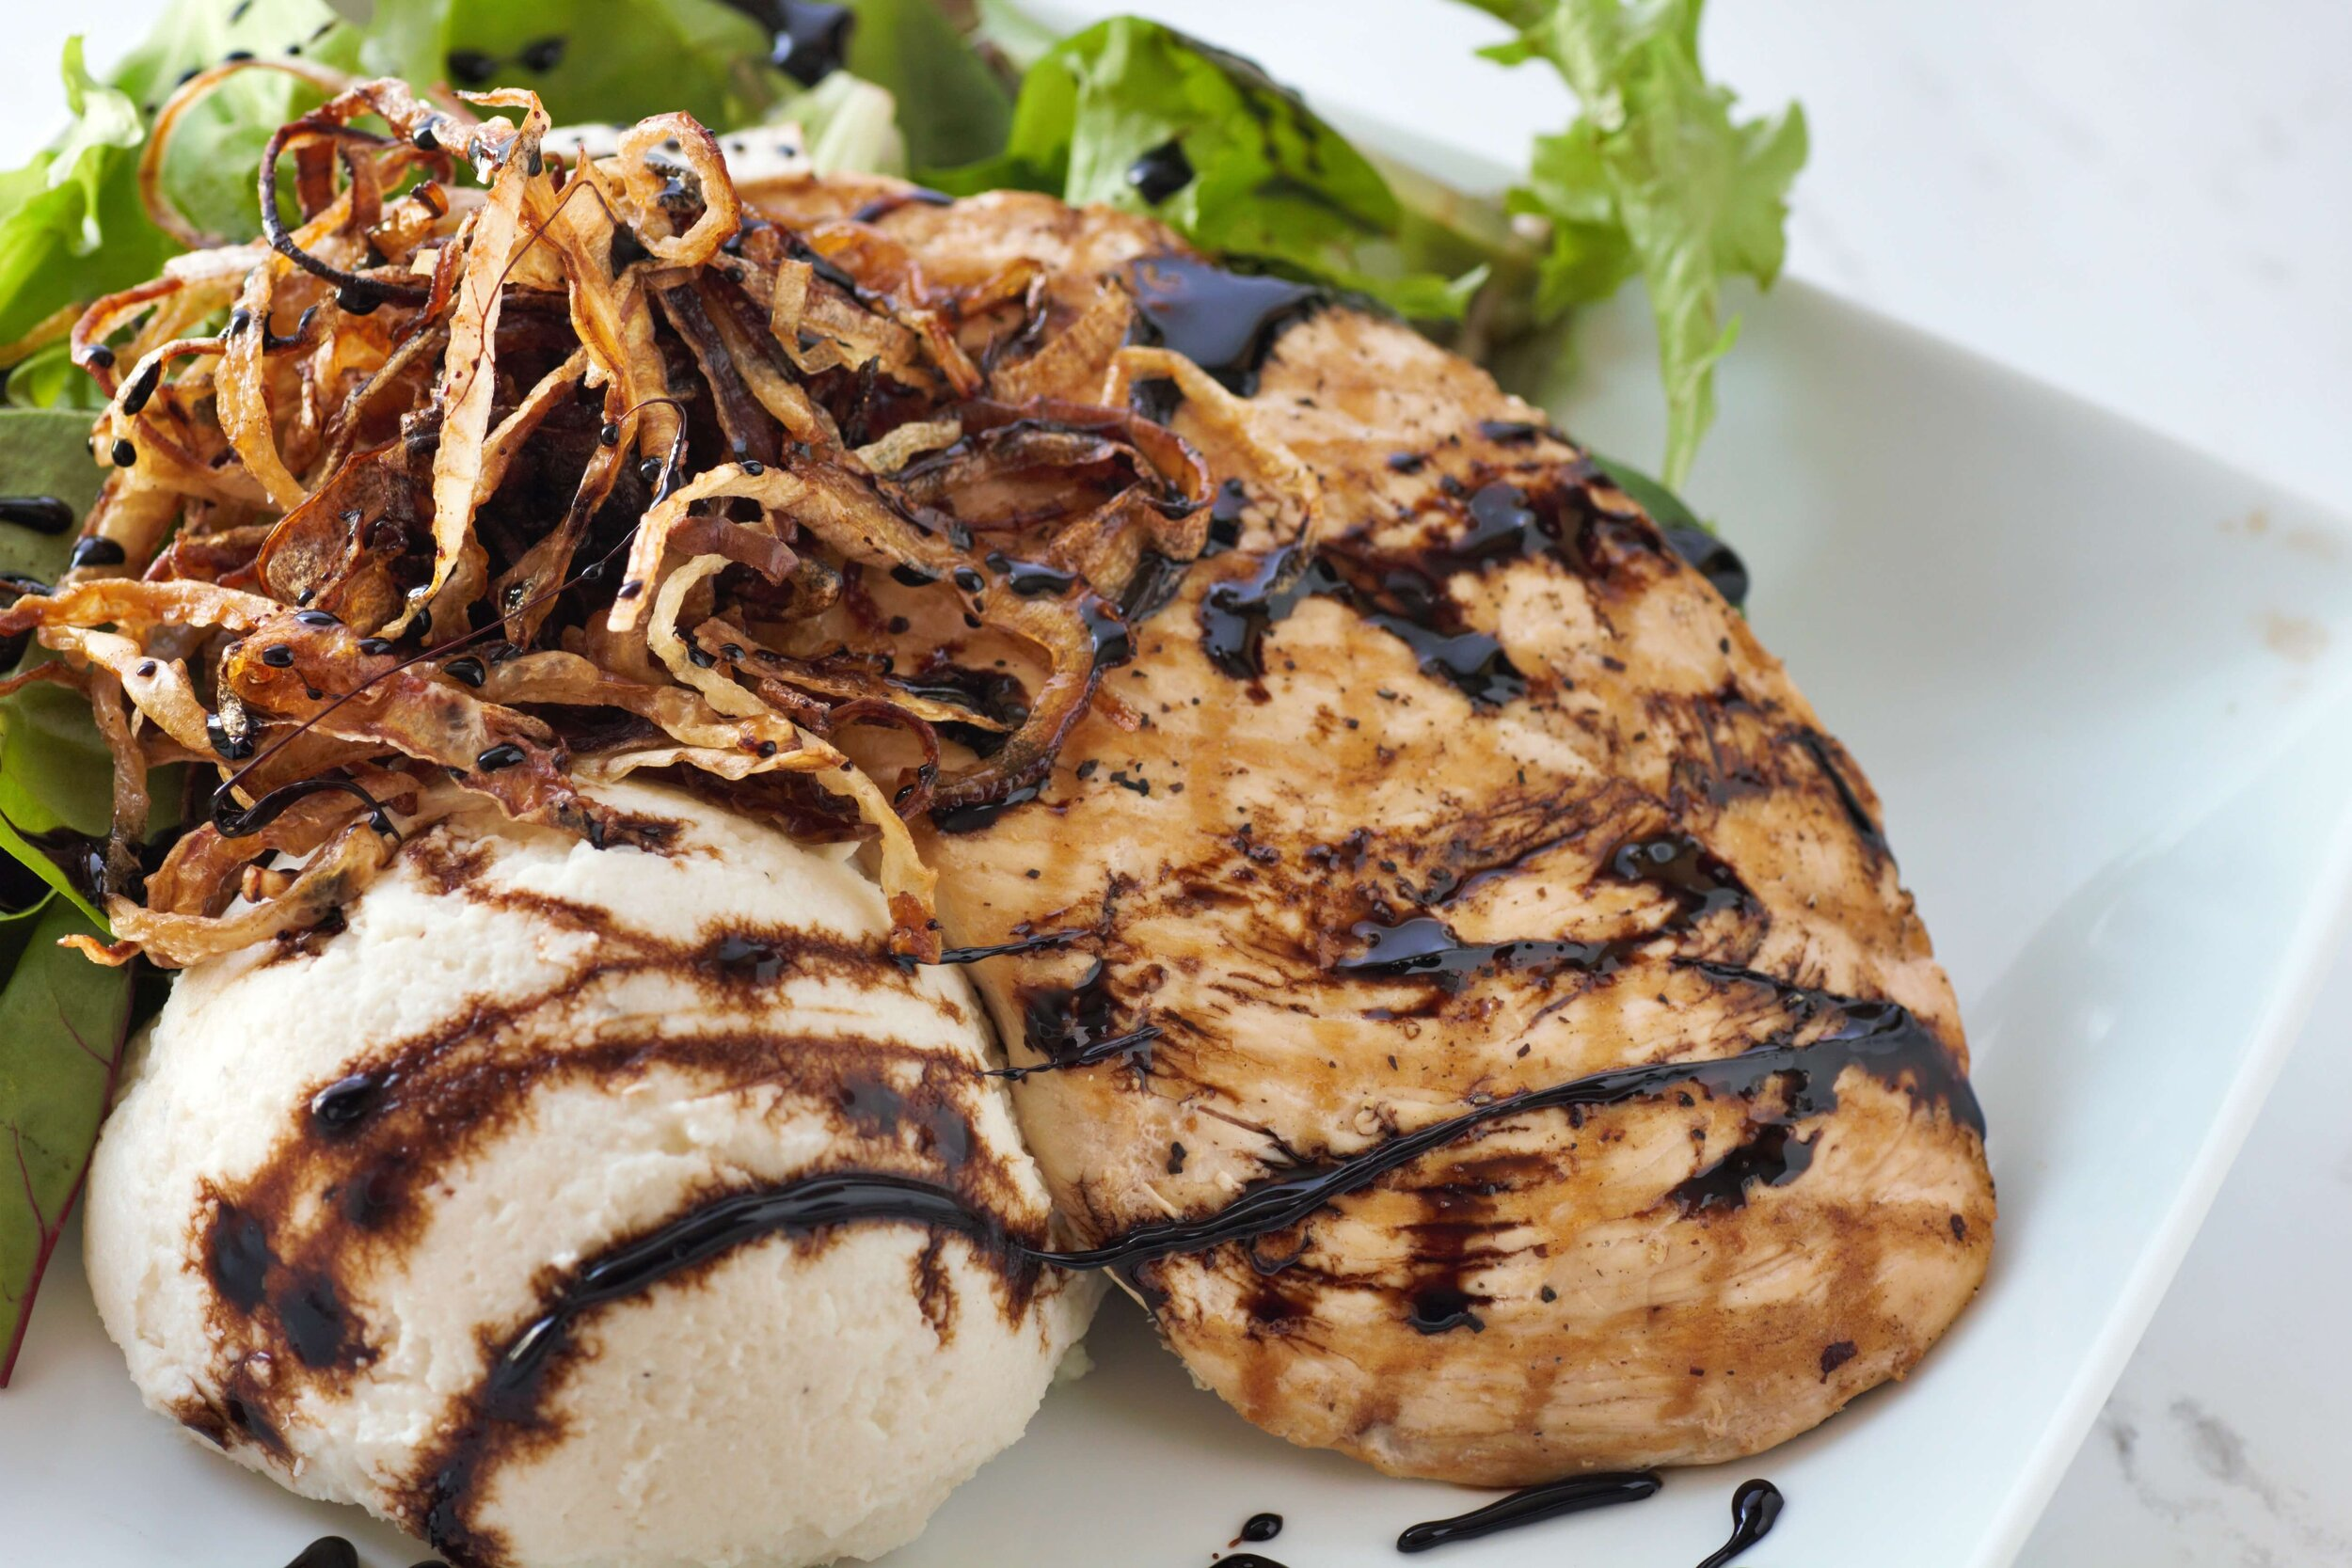 Balsamic chicken tastes like it came out of a snazzy bistro, yet this recipe is still totally low carb! You'll love the balance of flavor and texture in this dish.